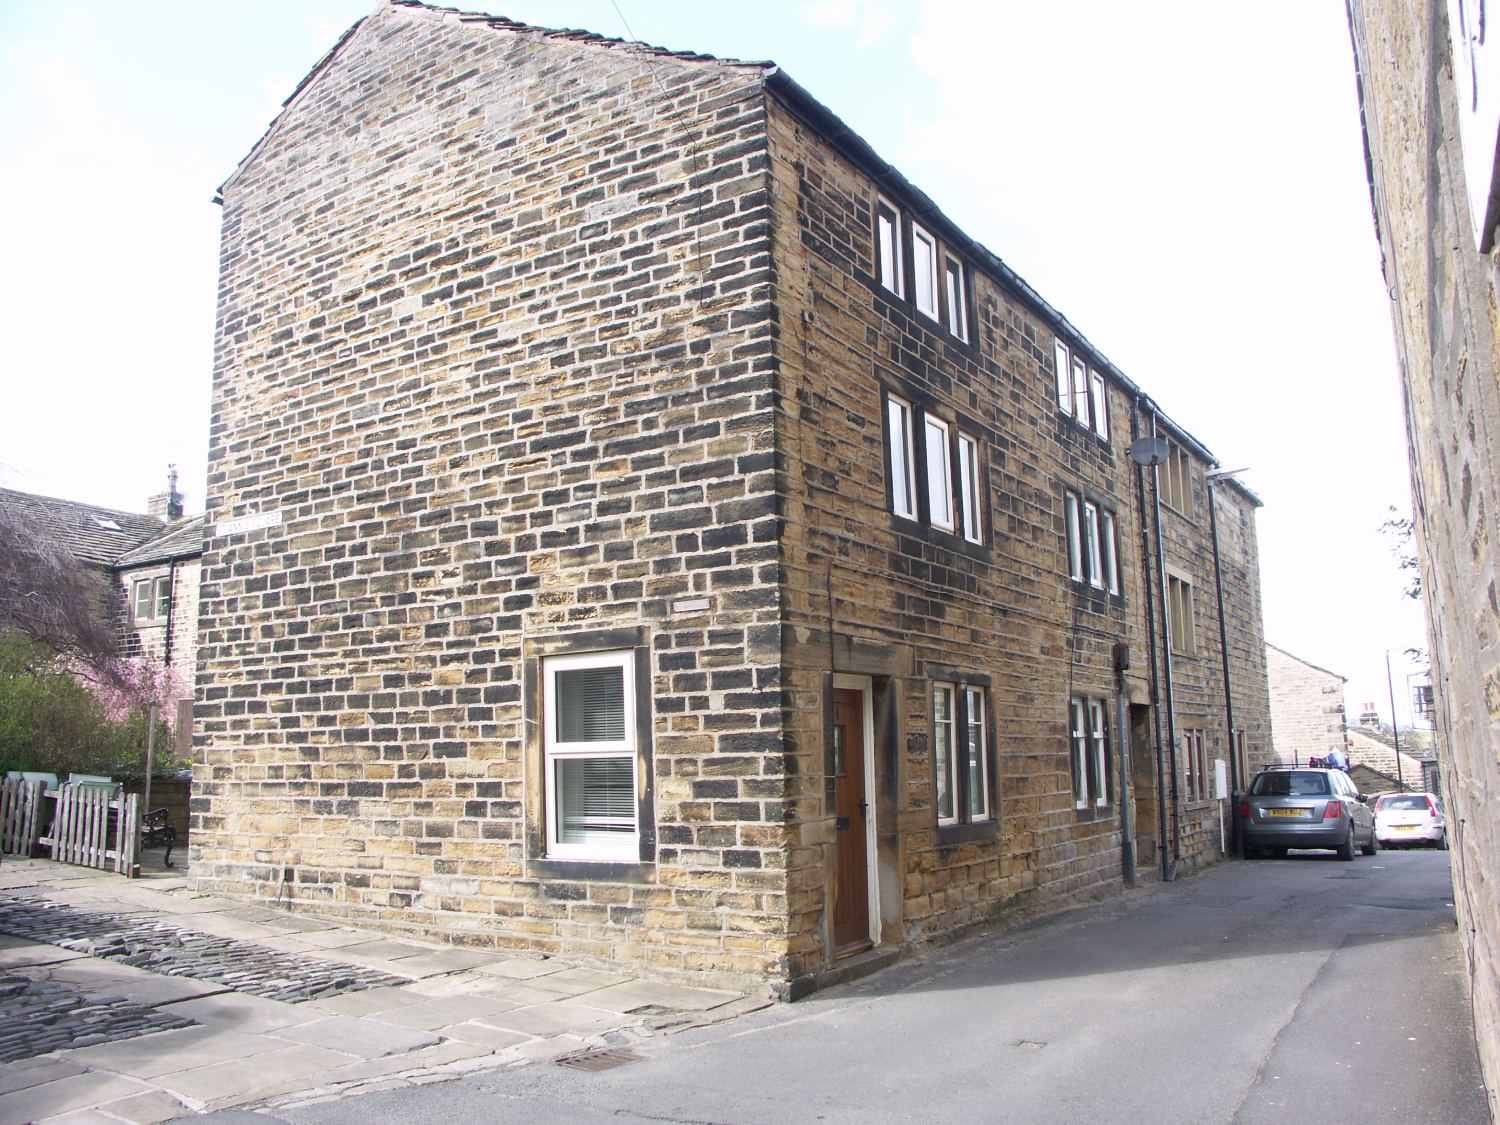 1 Outlane, Netherthong, Holmfirth, HD9 3EQ